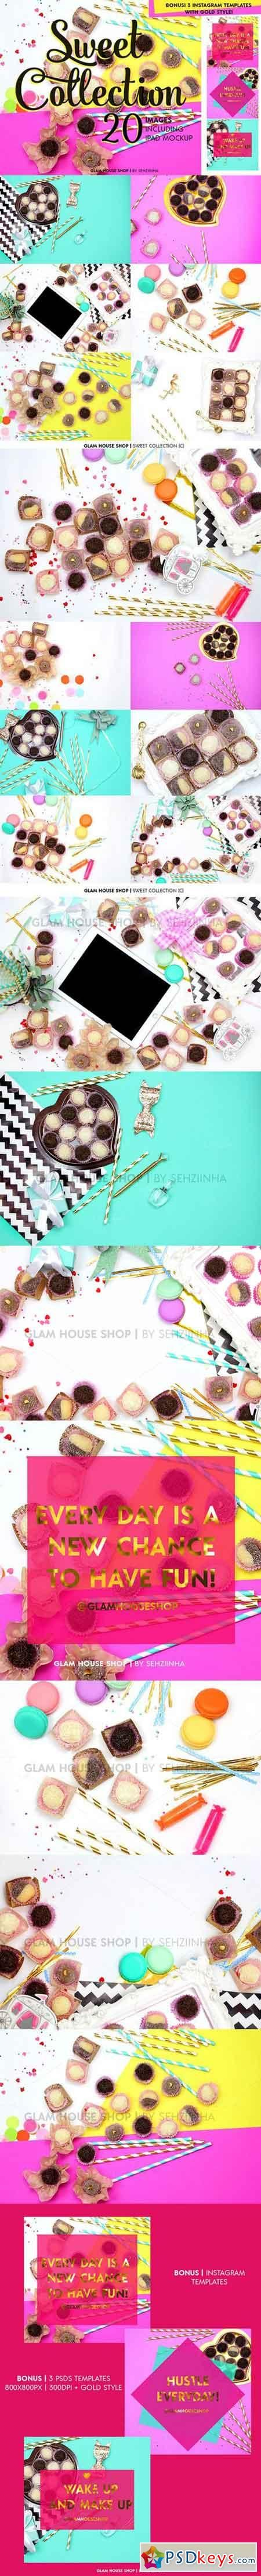 Sweet Collection Styled Stock Photos 928386